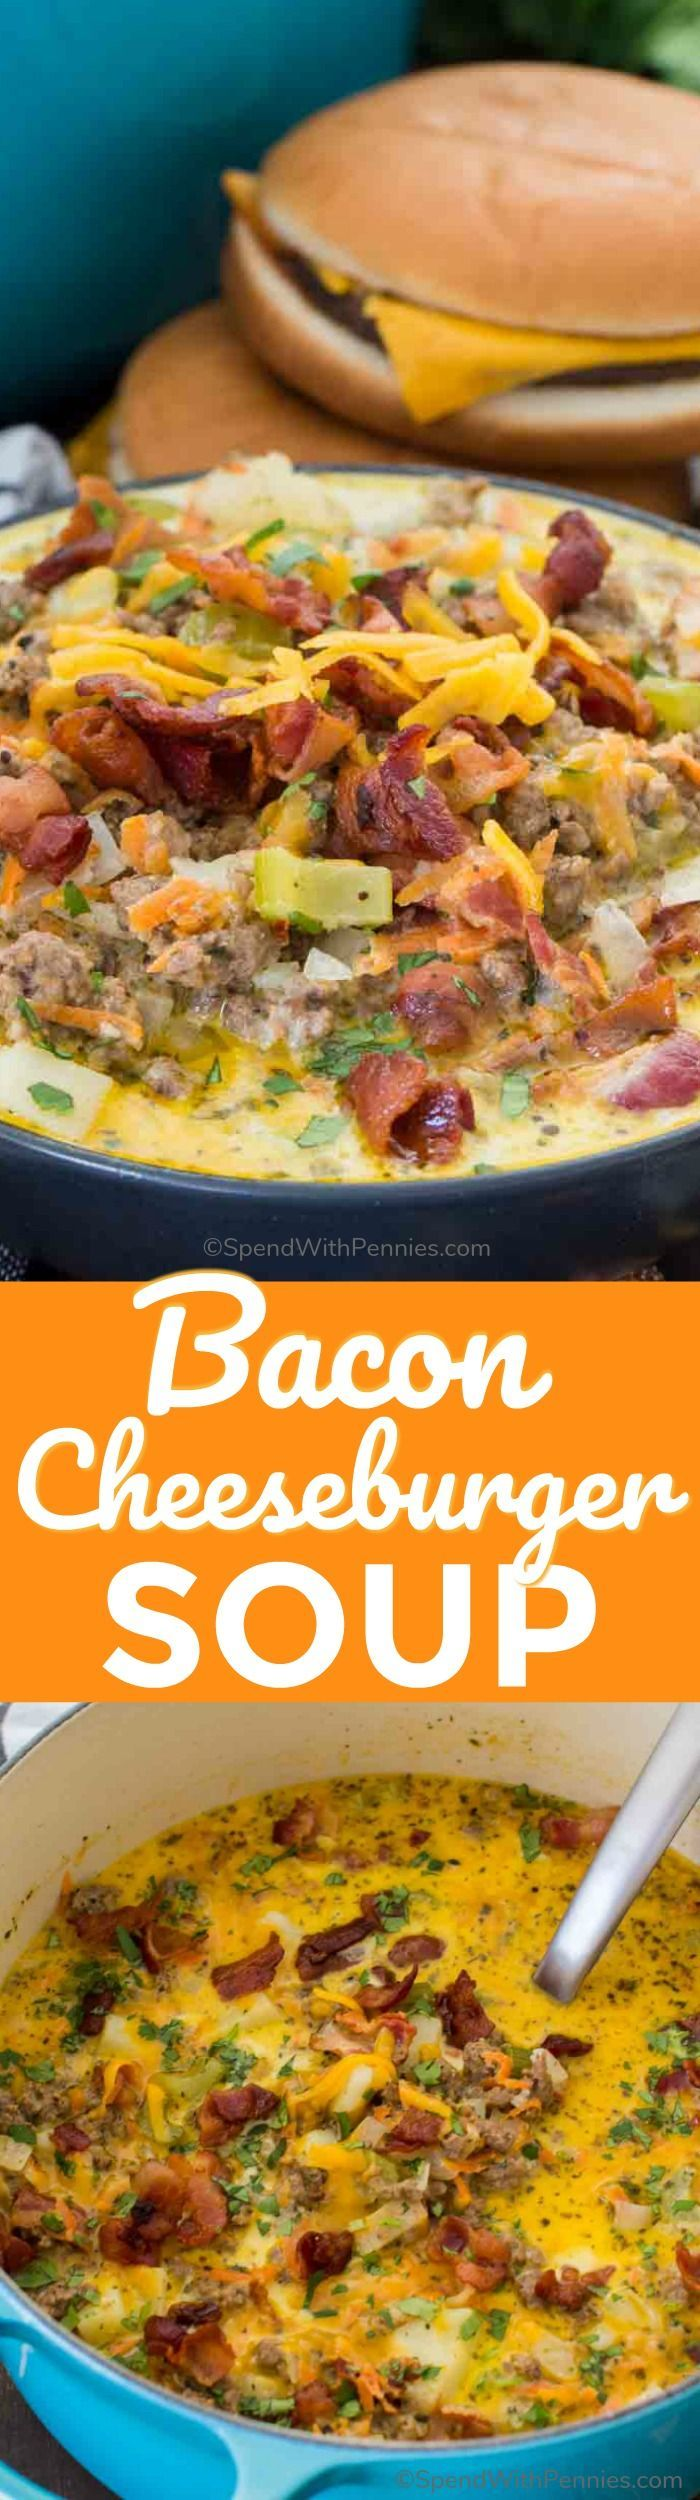 Bacon Cheeseburger Soup is a hearty and creamy take on America's favorite cheeseburger. The soup is full of flavor, easy to make and comforting. #spendwithpennies #baconcheeseburger #soup #easyrecipe #weekdaymeal #heartymeal #cheeseburger #bacon